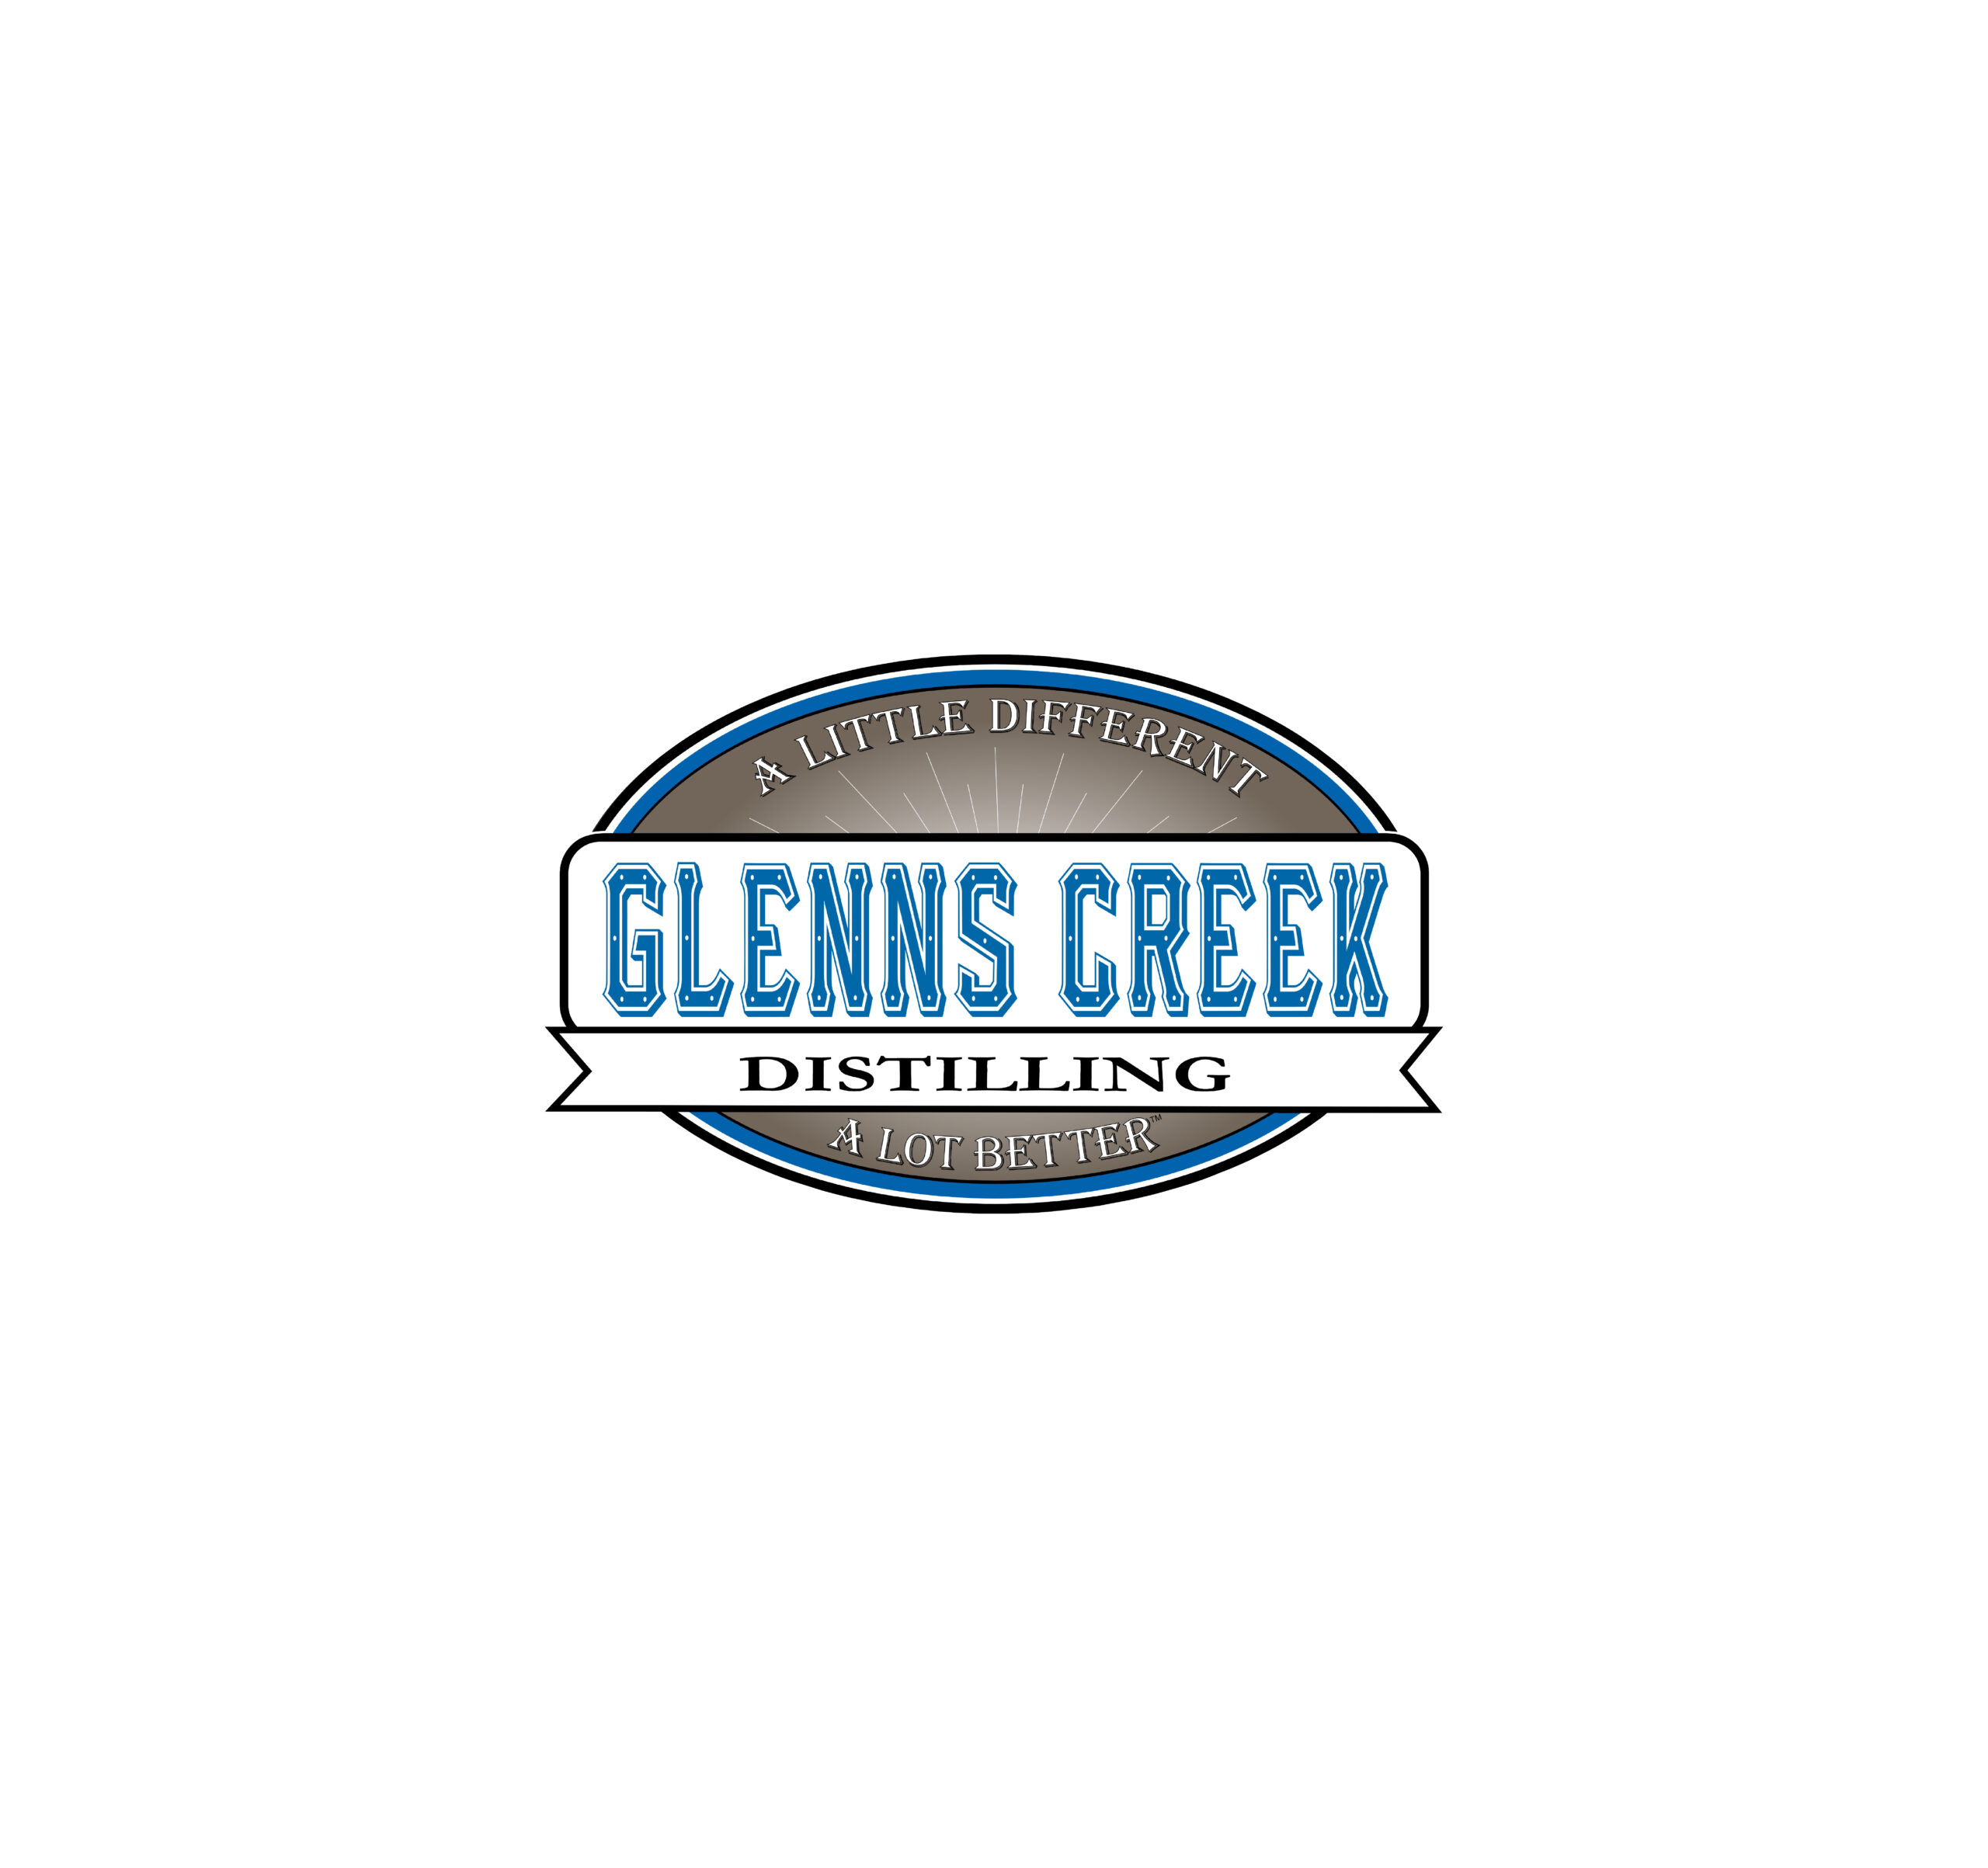 Glenns Creek Distillery